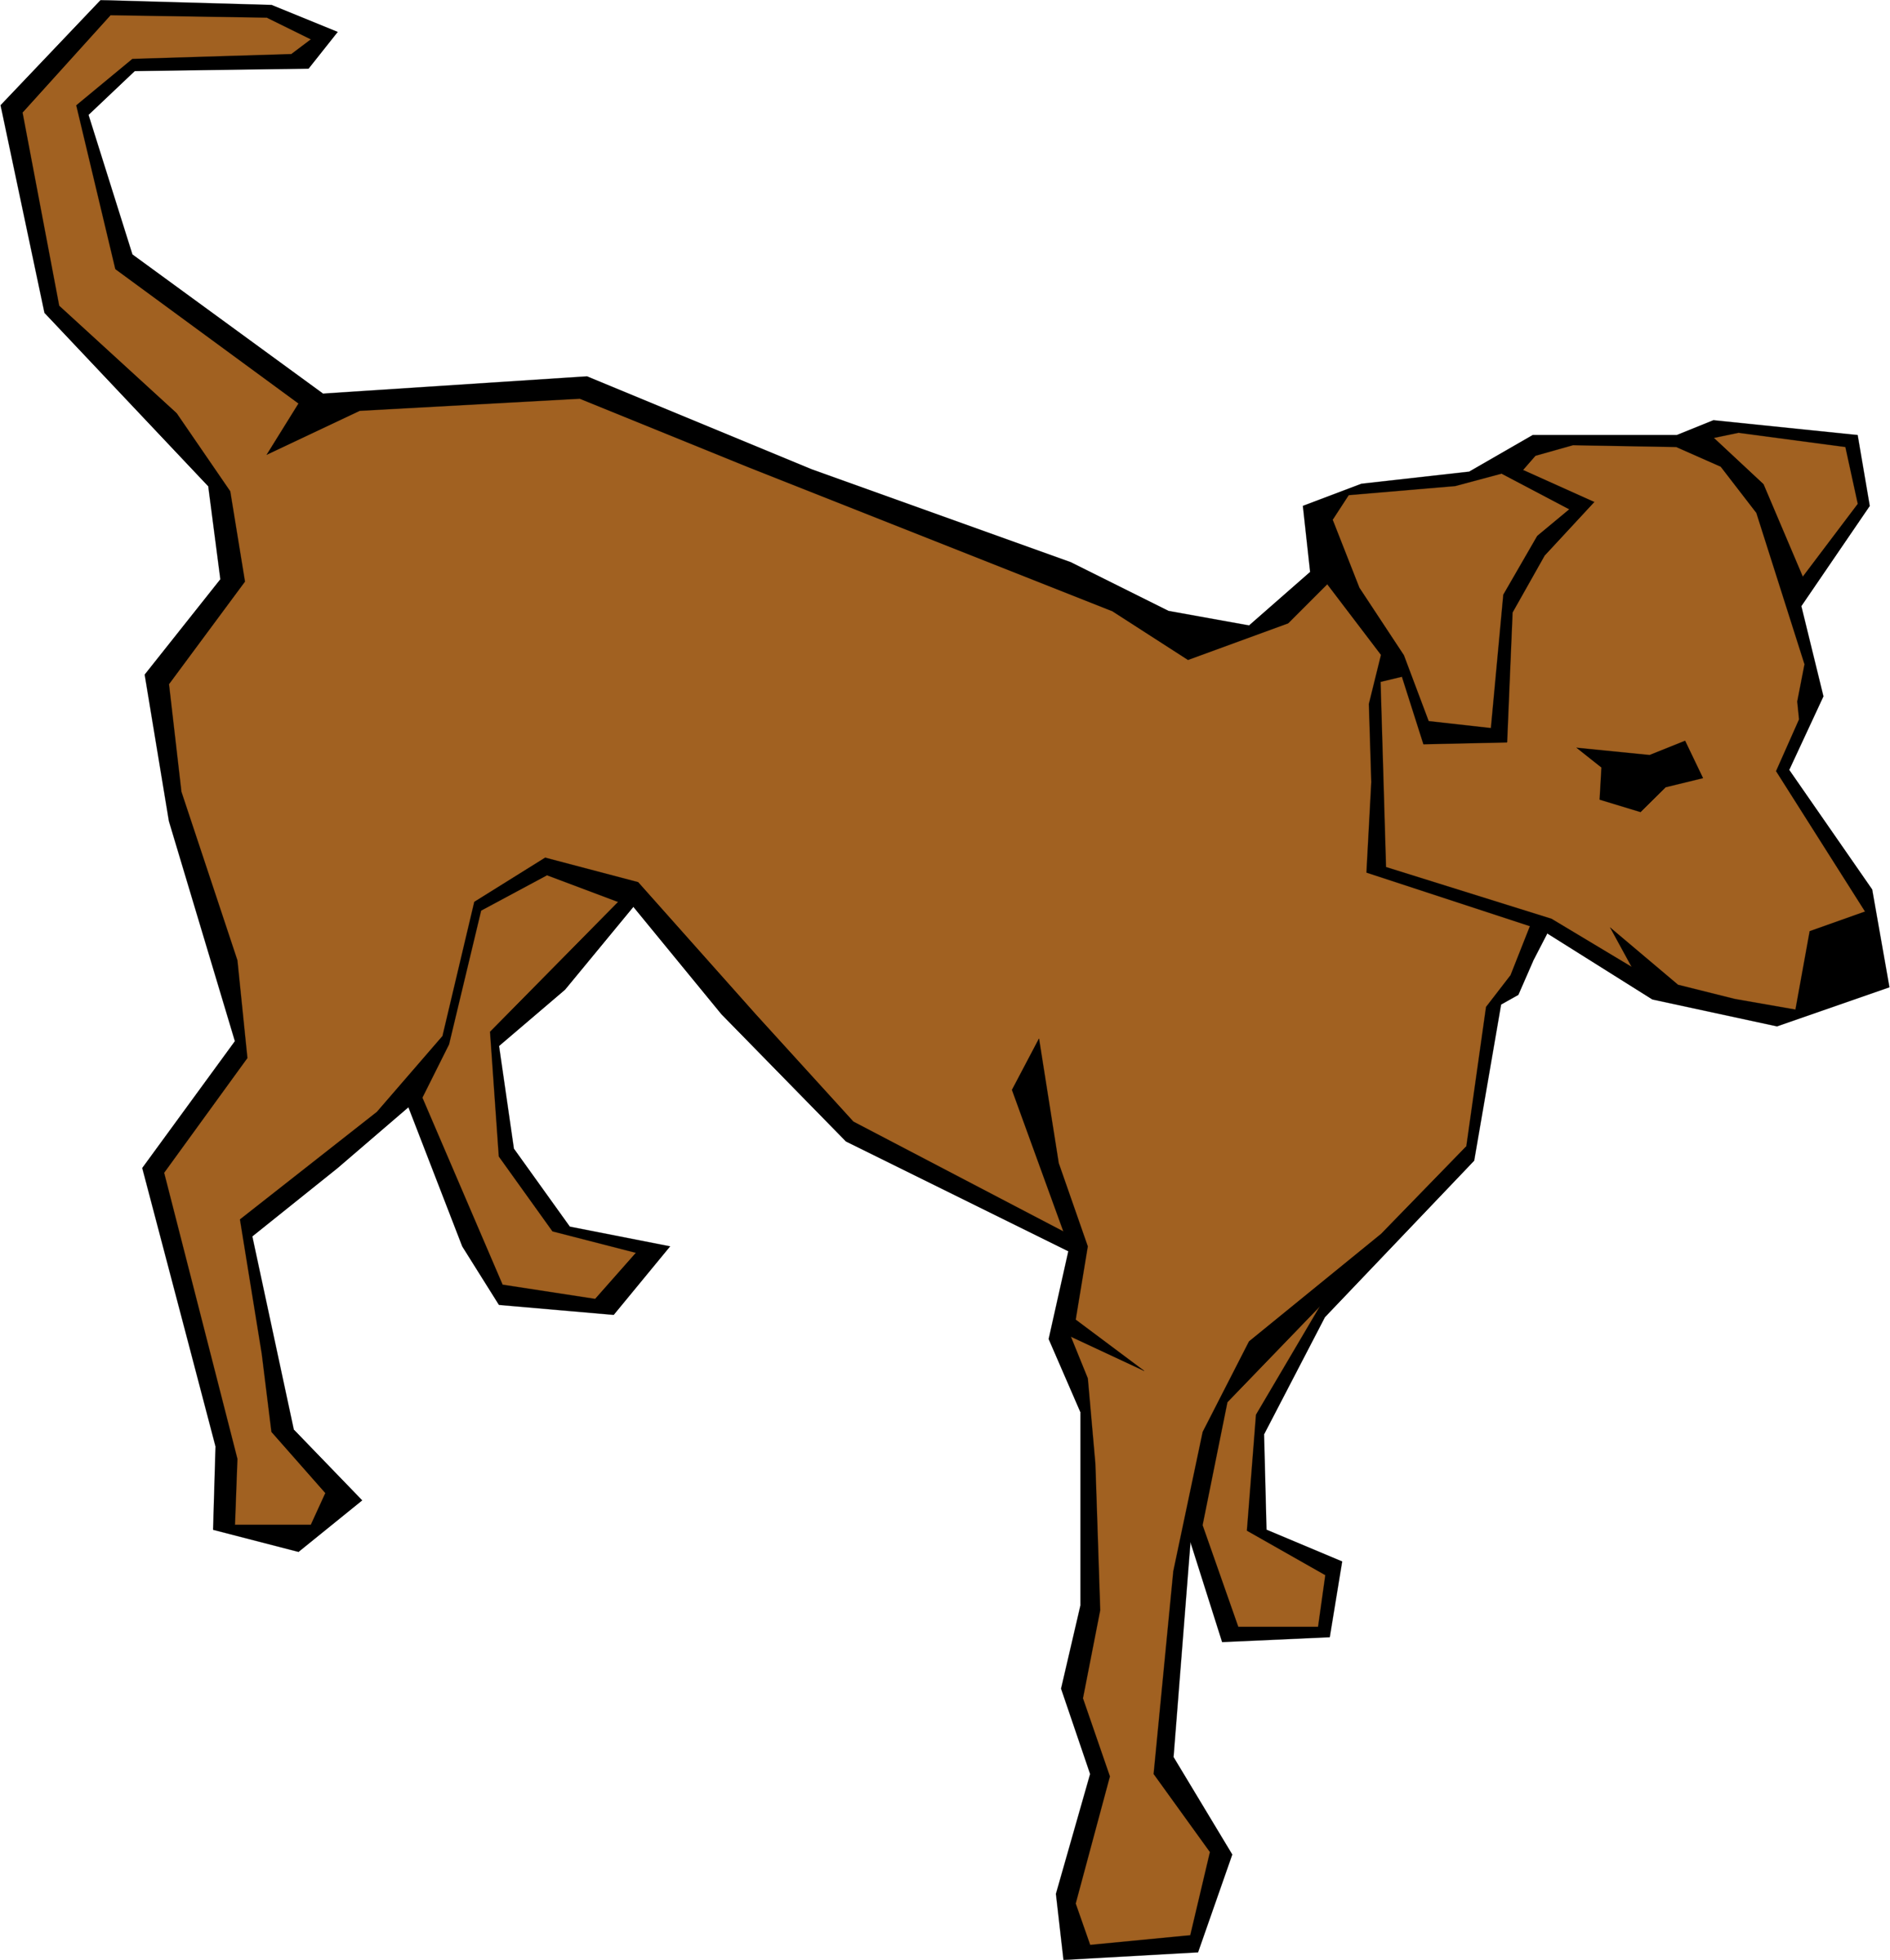 Dog clipart drawing clipart royalty free library Simple Dog Clipart - Clipart Kid clipart royalty free library